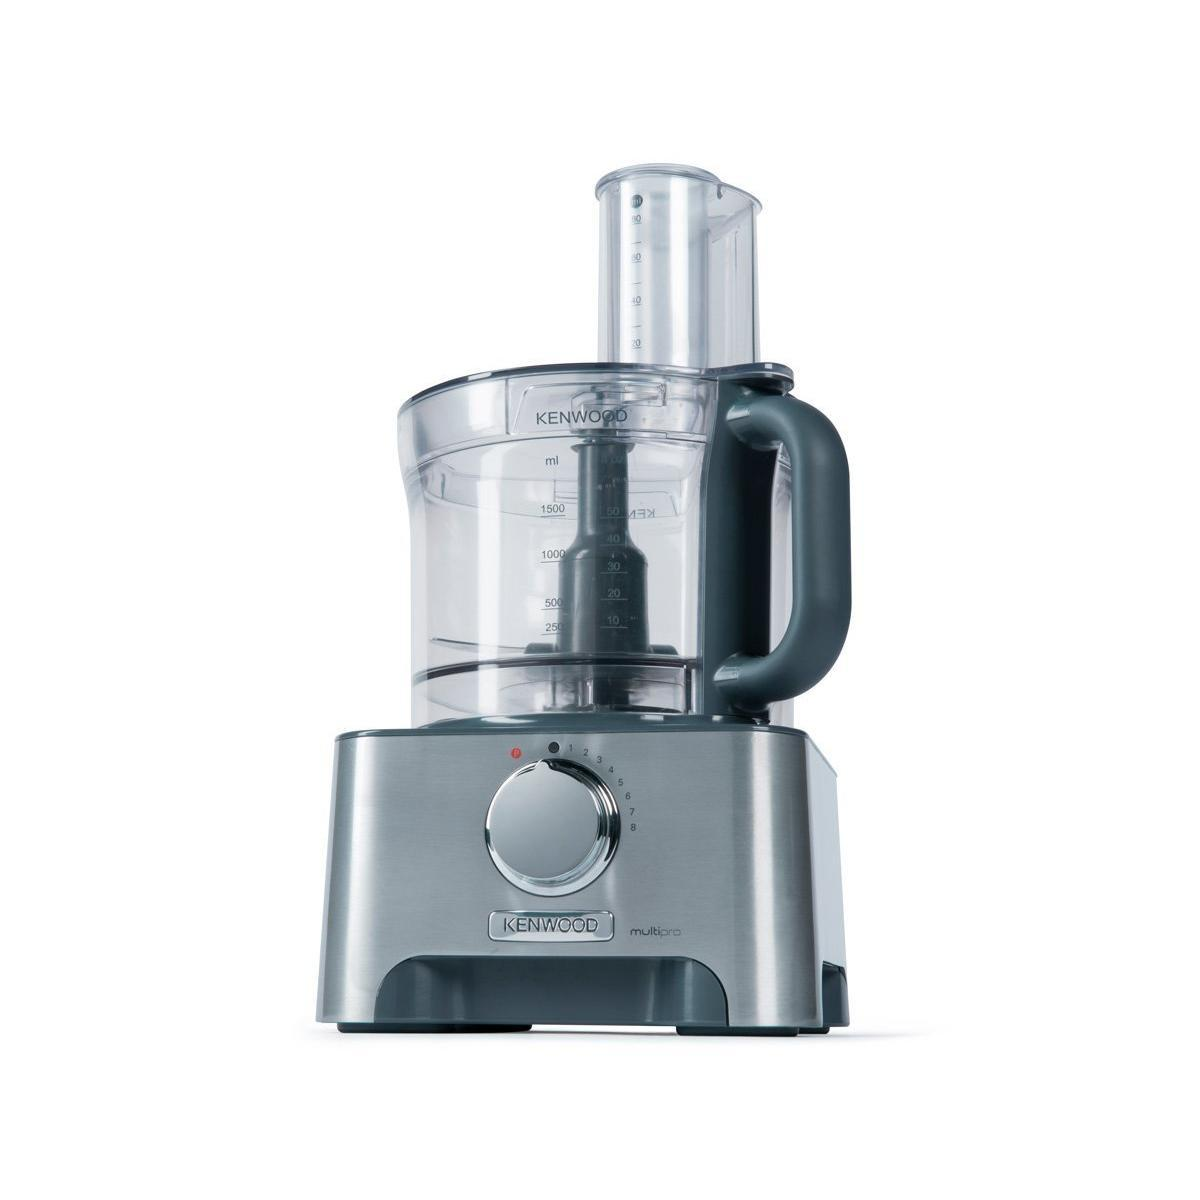 Kenwood - FDM780BA - Mixeur Multipro Compact 1000 W